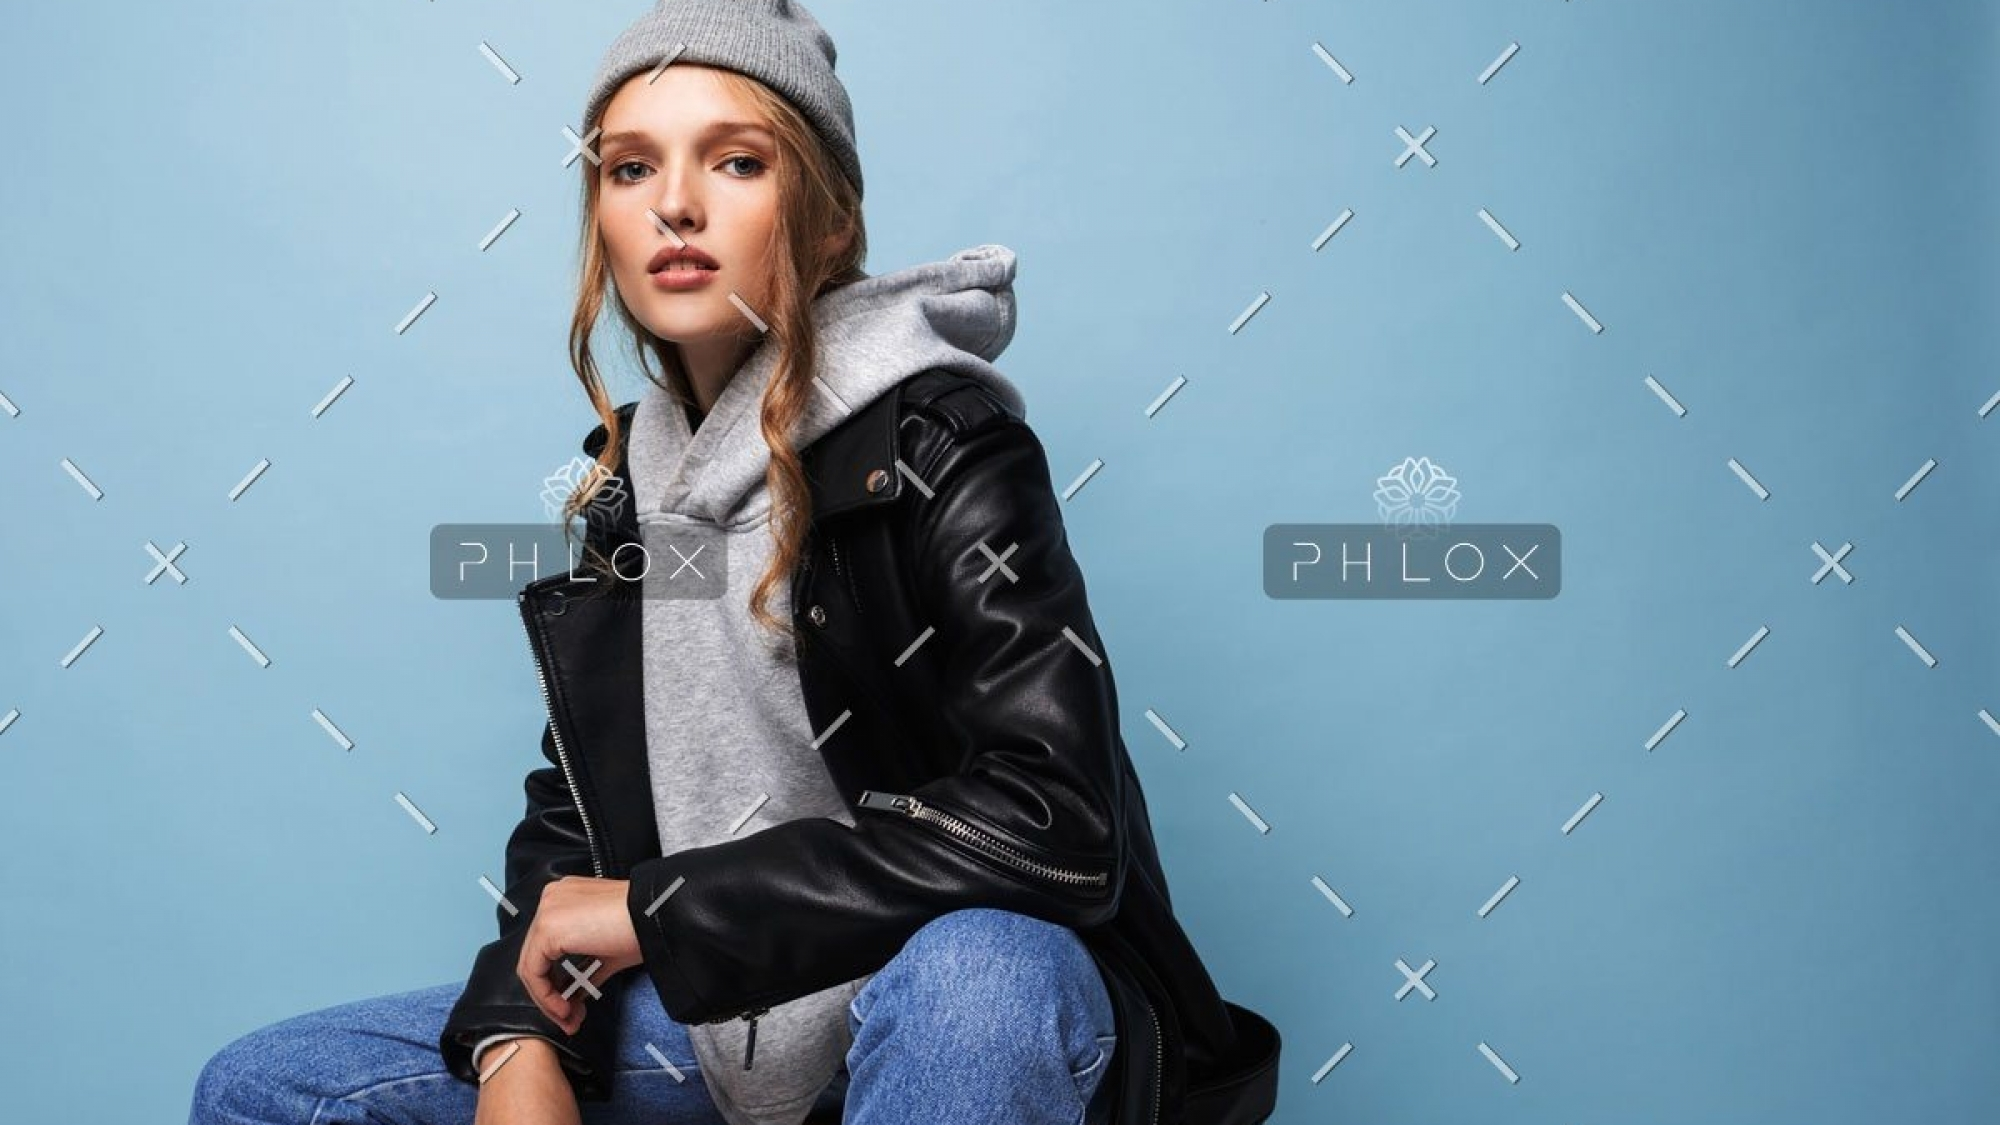 demo-attachment-404-young-beautiful-woman-with-wavy-hair-in-gray-hat-W8LUZM3